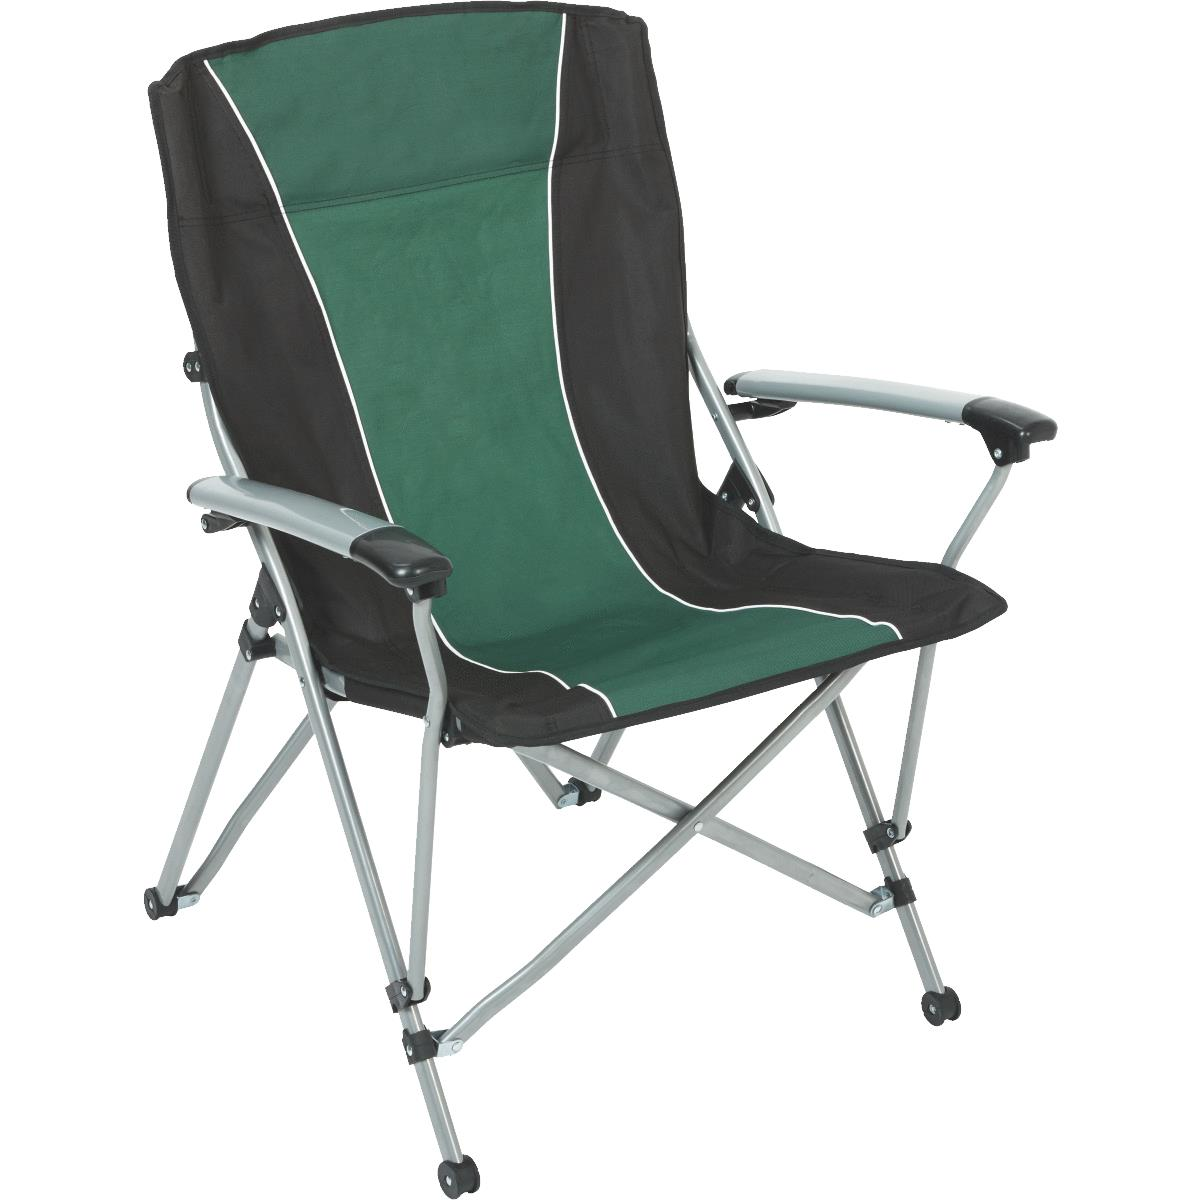 Outdoor Expressions Flat Arm Folding Lawn Chair